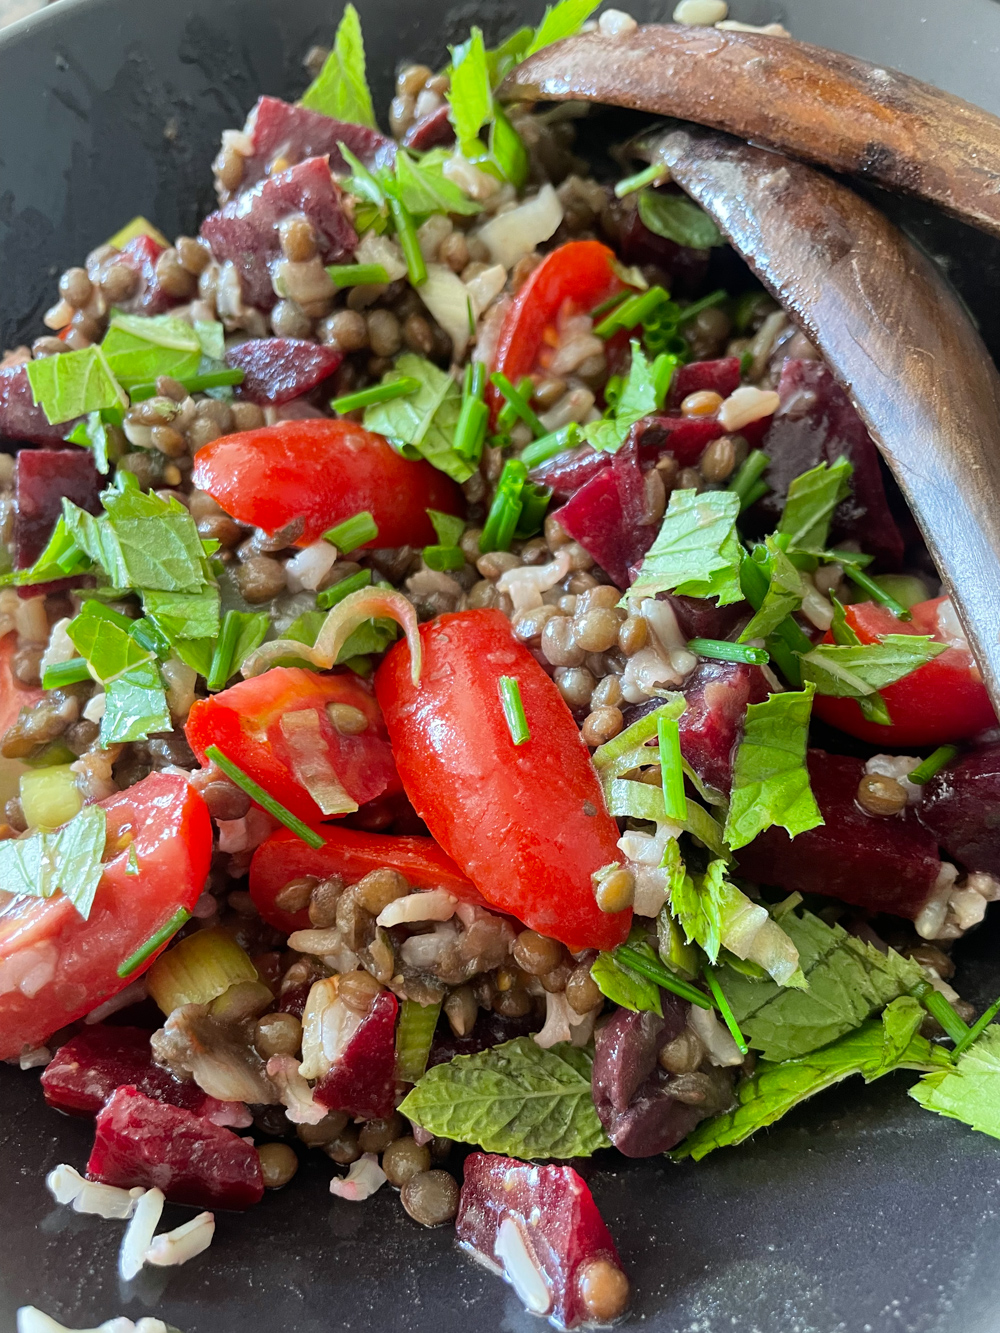 Left over lentils and rice with beets, tomatoes and herbs